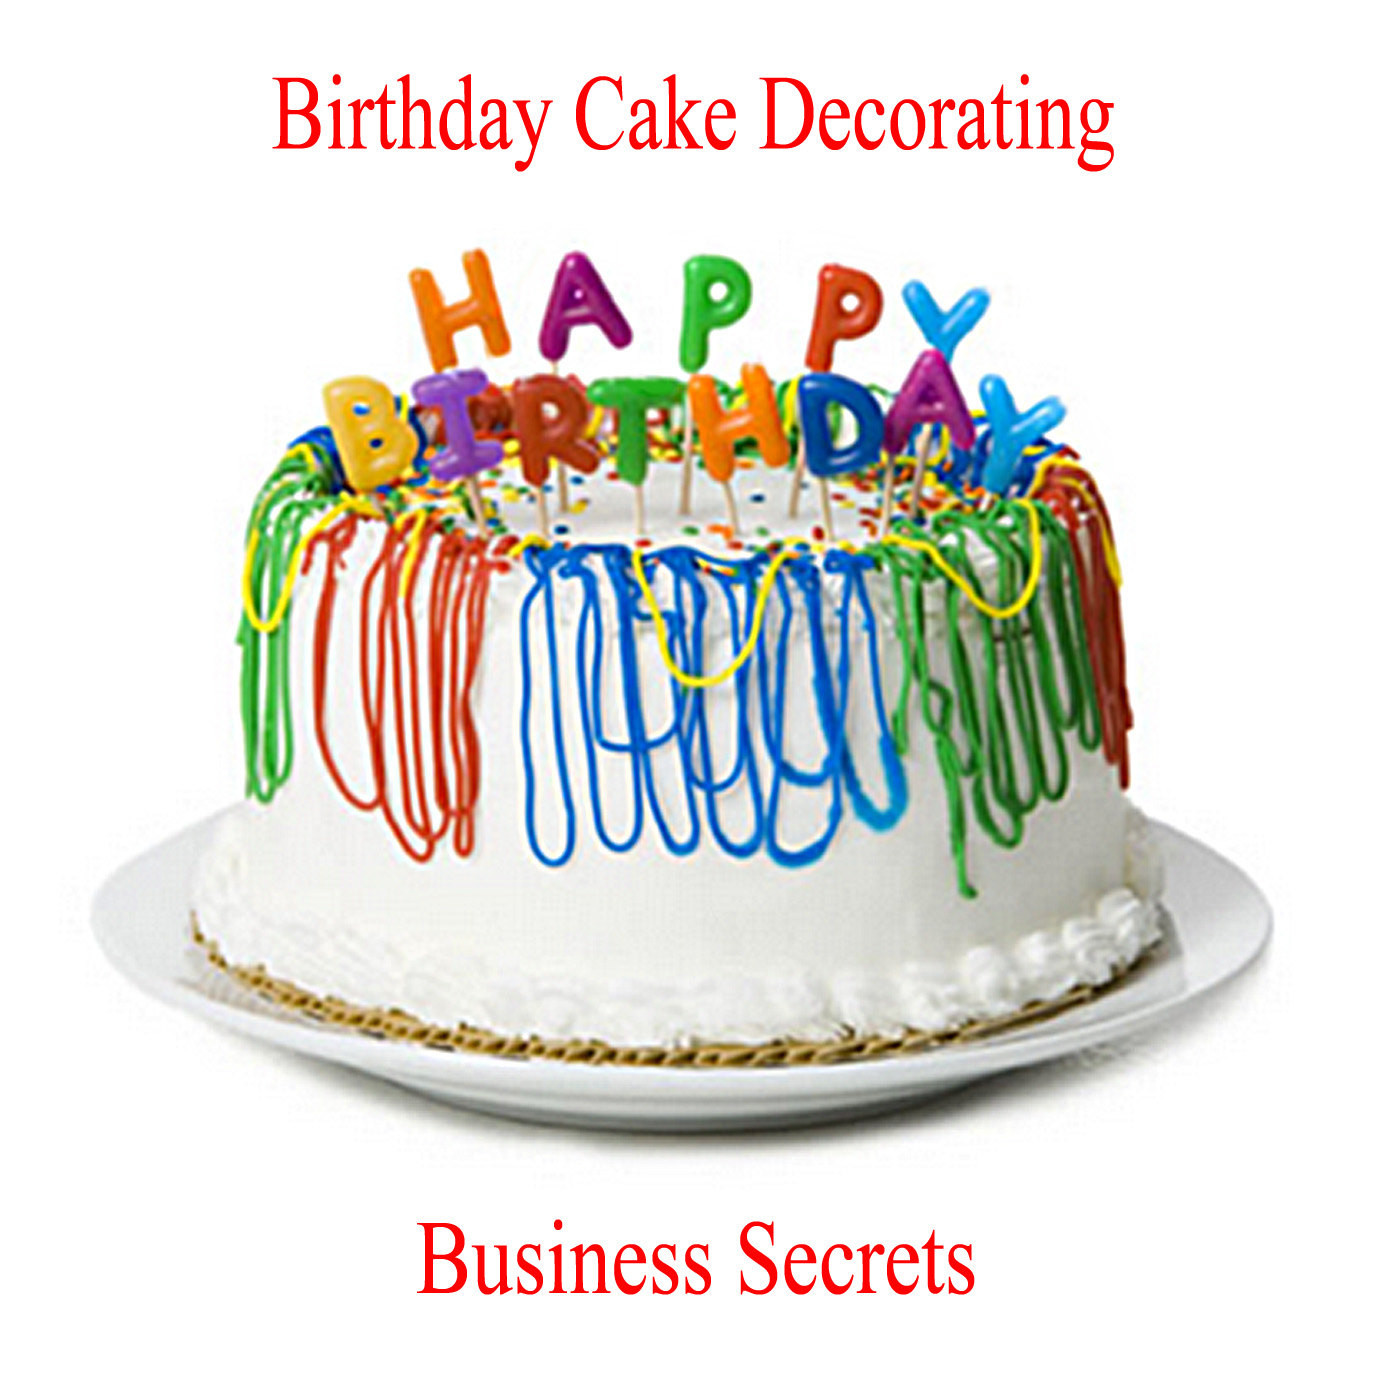 Funny Birthday Cakes Images  Birthday cake image image of birthday cake funny